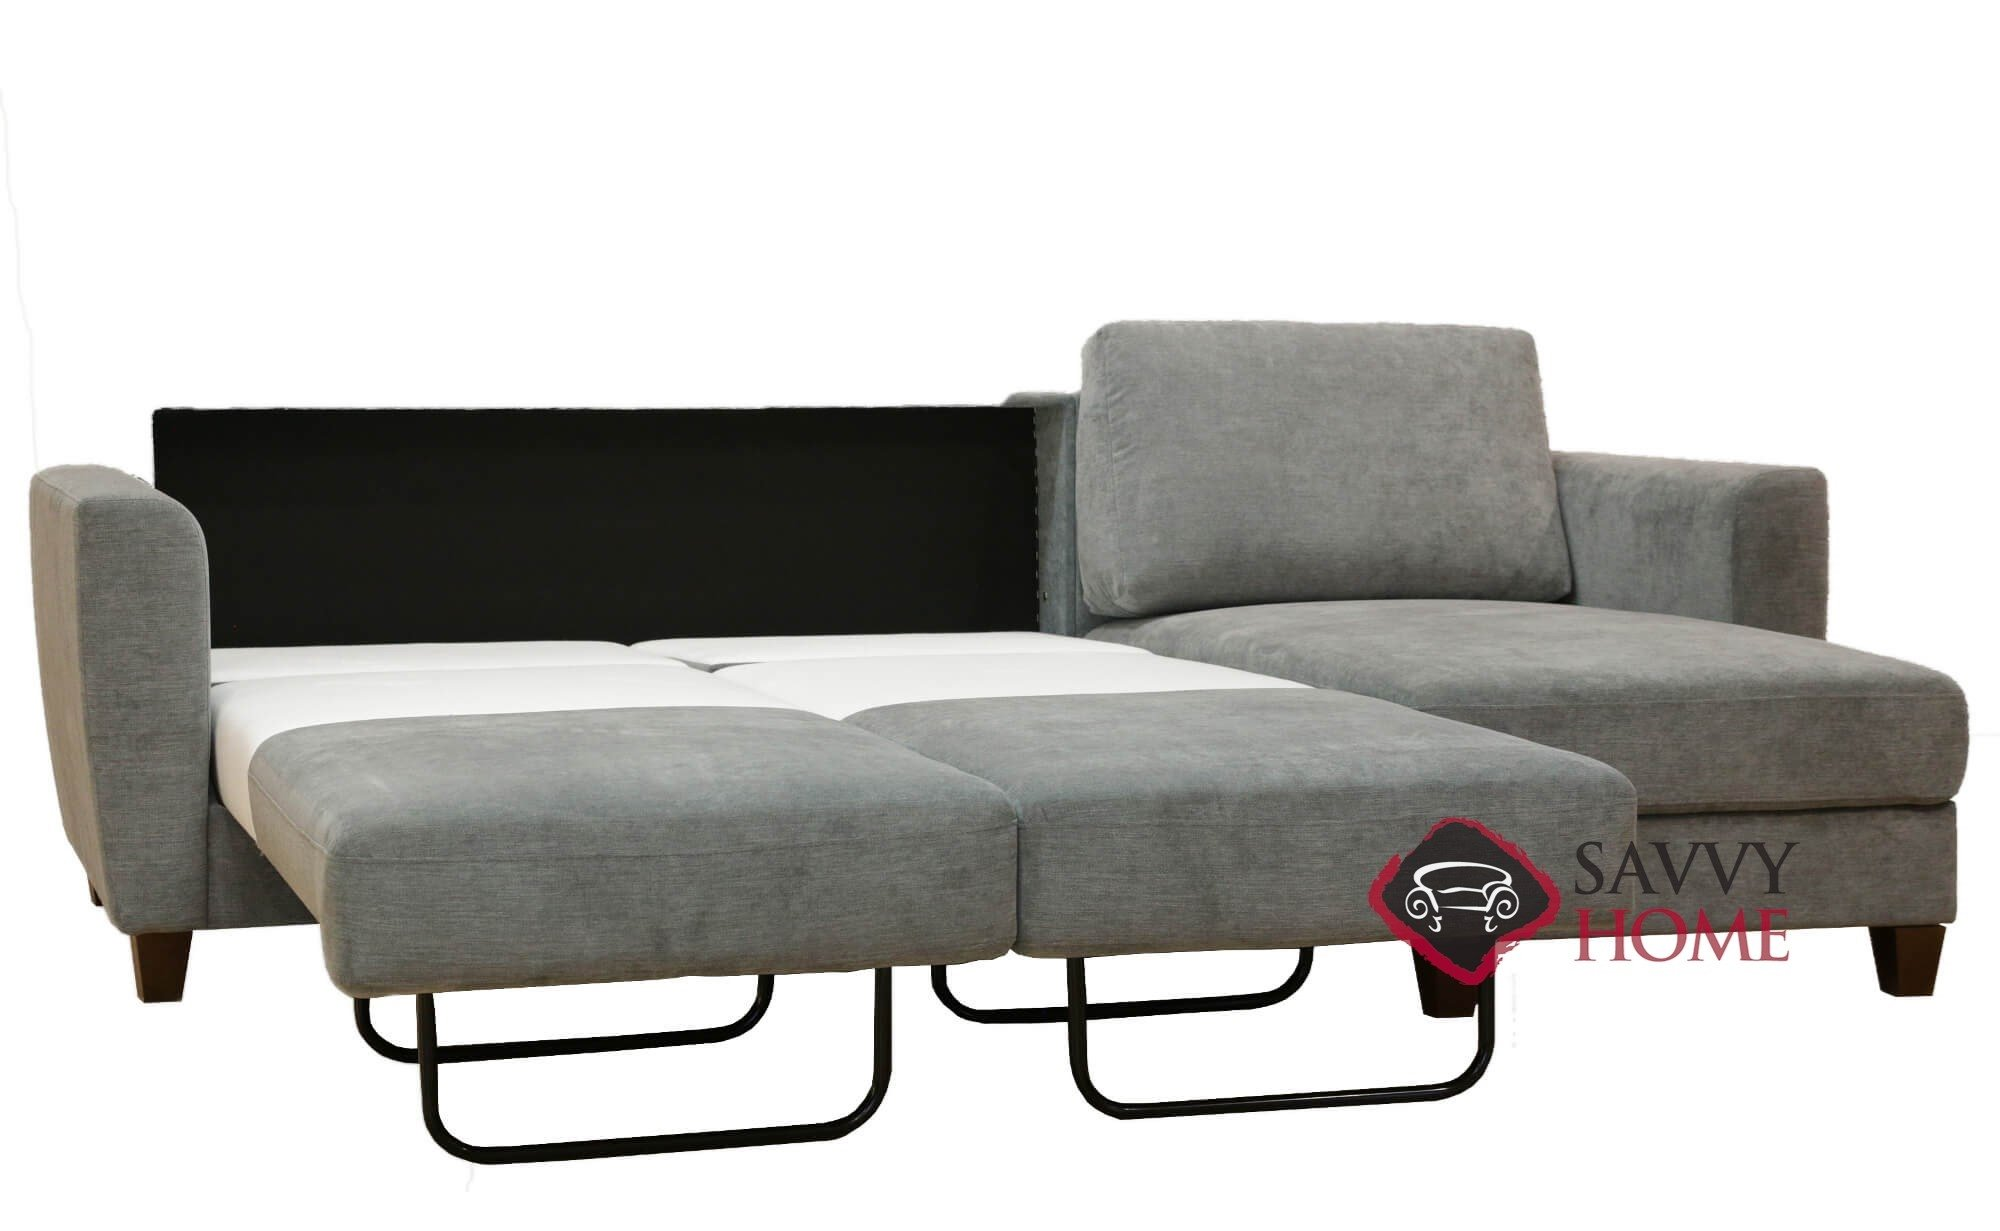 Delicieux ... Flex Chaise Sectional Full Sofa Bed In Lens 212 By Luonto ...